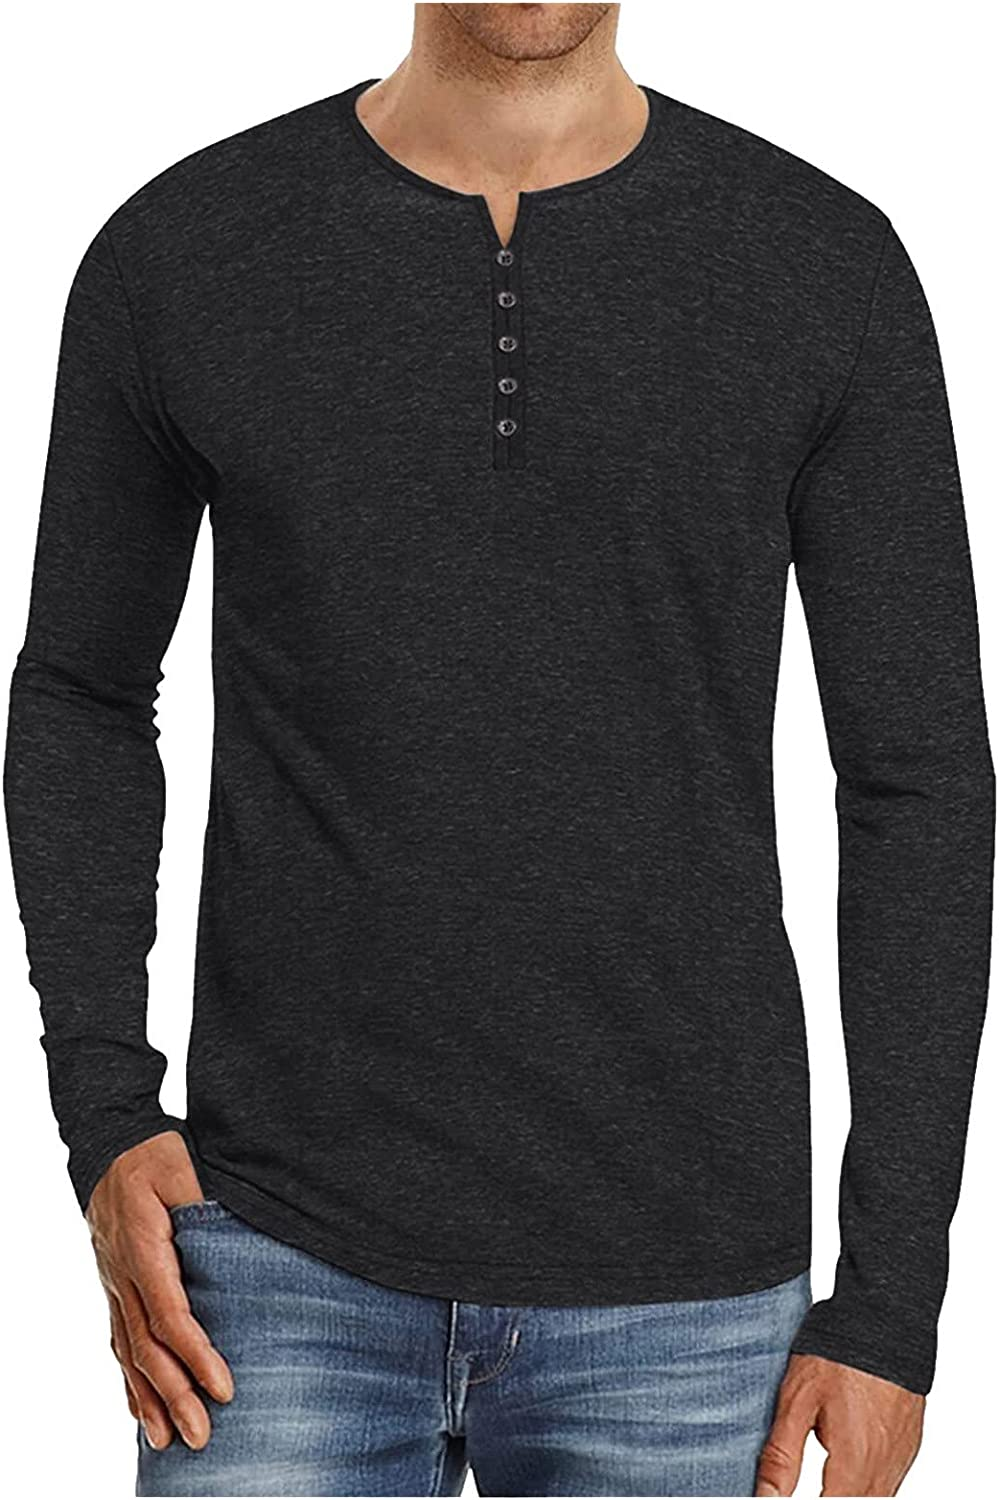 Men Long Sleeve Tee Shirts Henley Shirt Casual Loose Lightweight Button T-Shirts Solid Color Top Autumn Winter Clothes